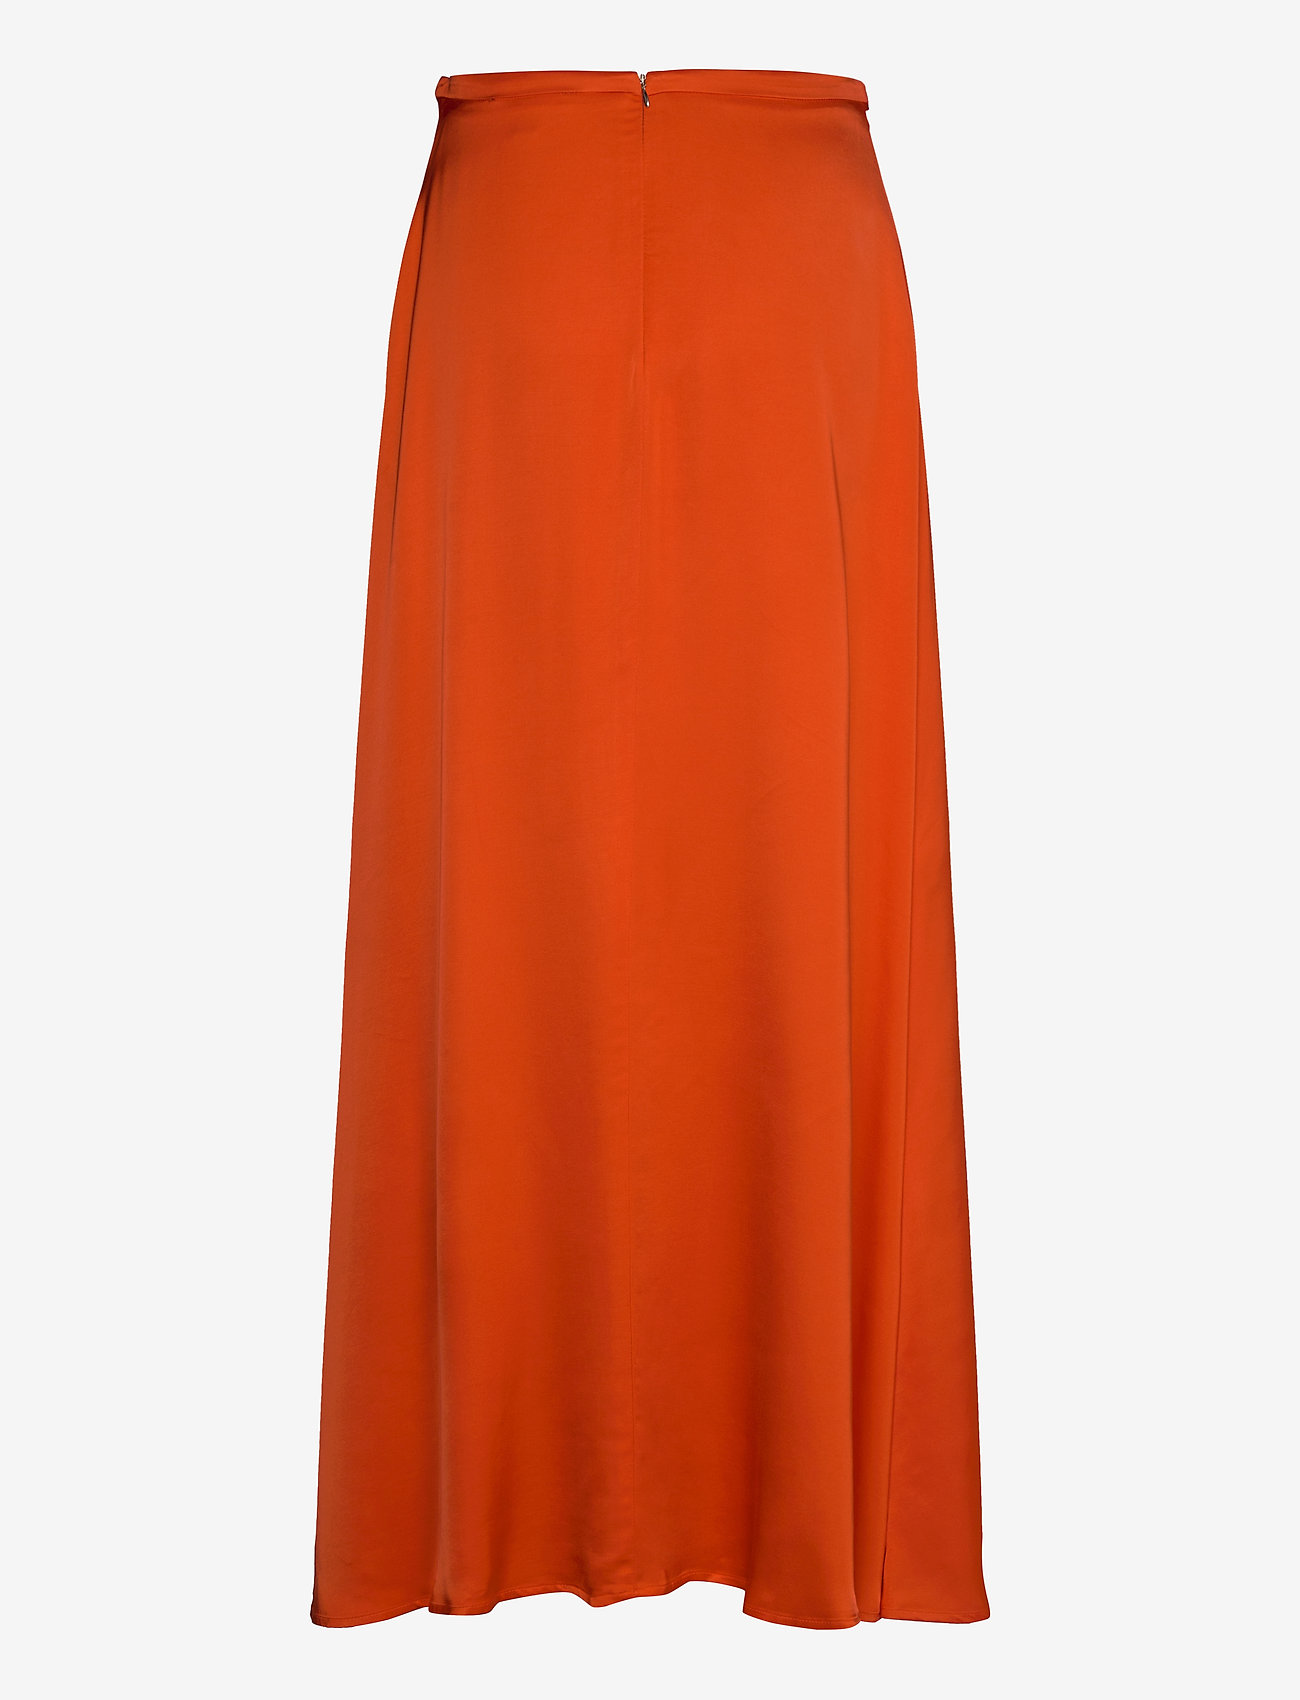 Esprit Collection - Skirts light woven - maxi skirts - red orange - 1